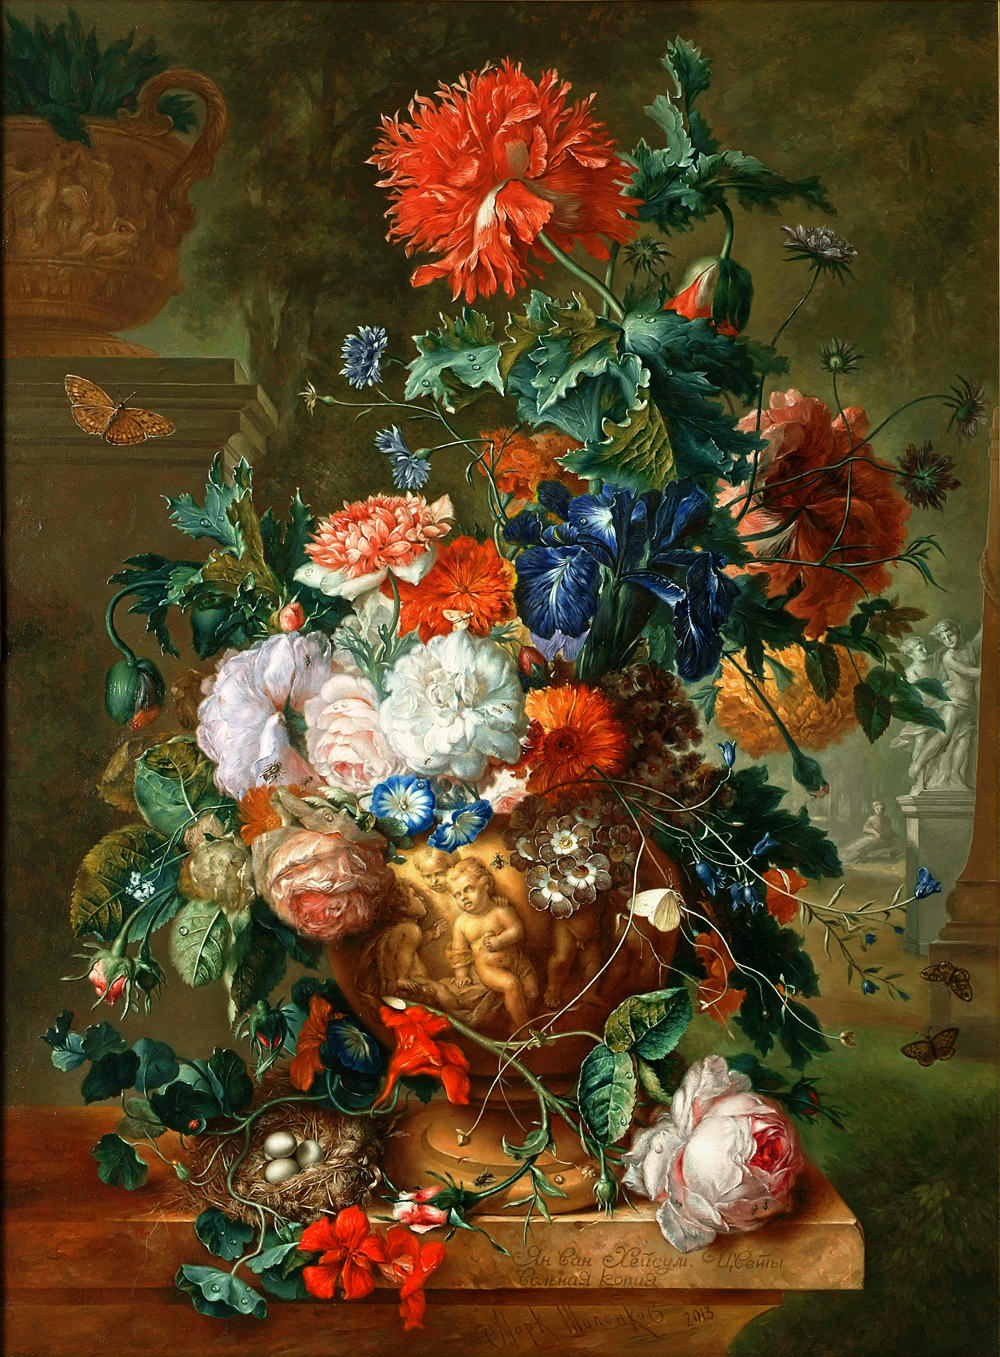 J.Van Hasum.Bouquet of flowers.